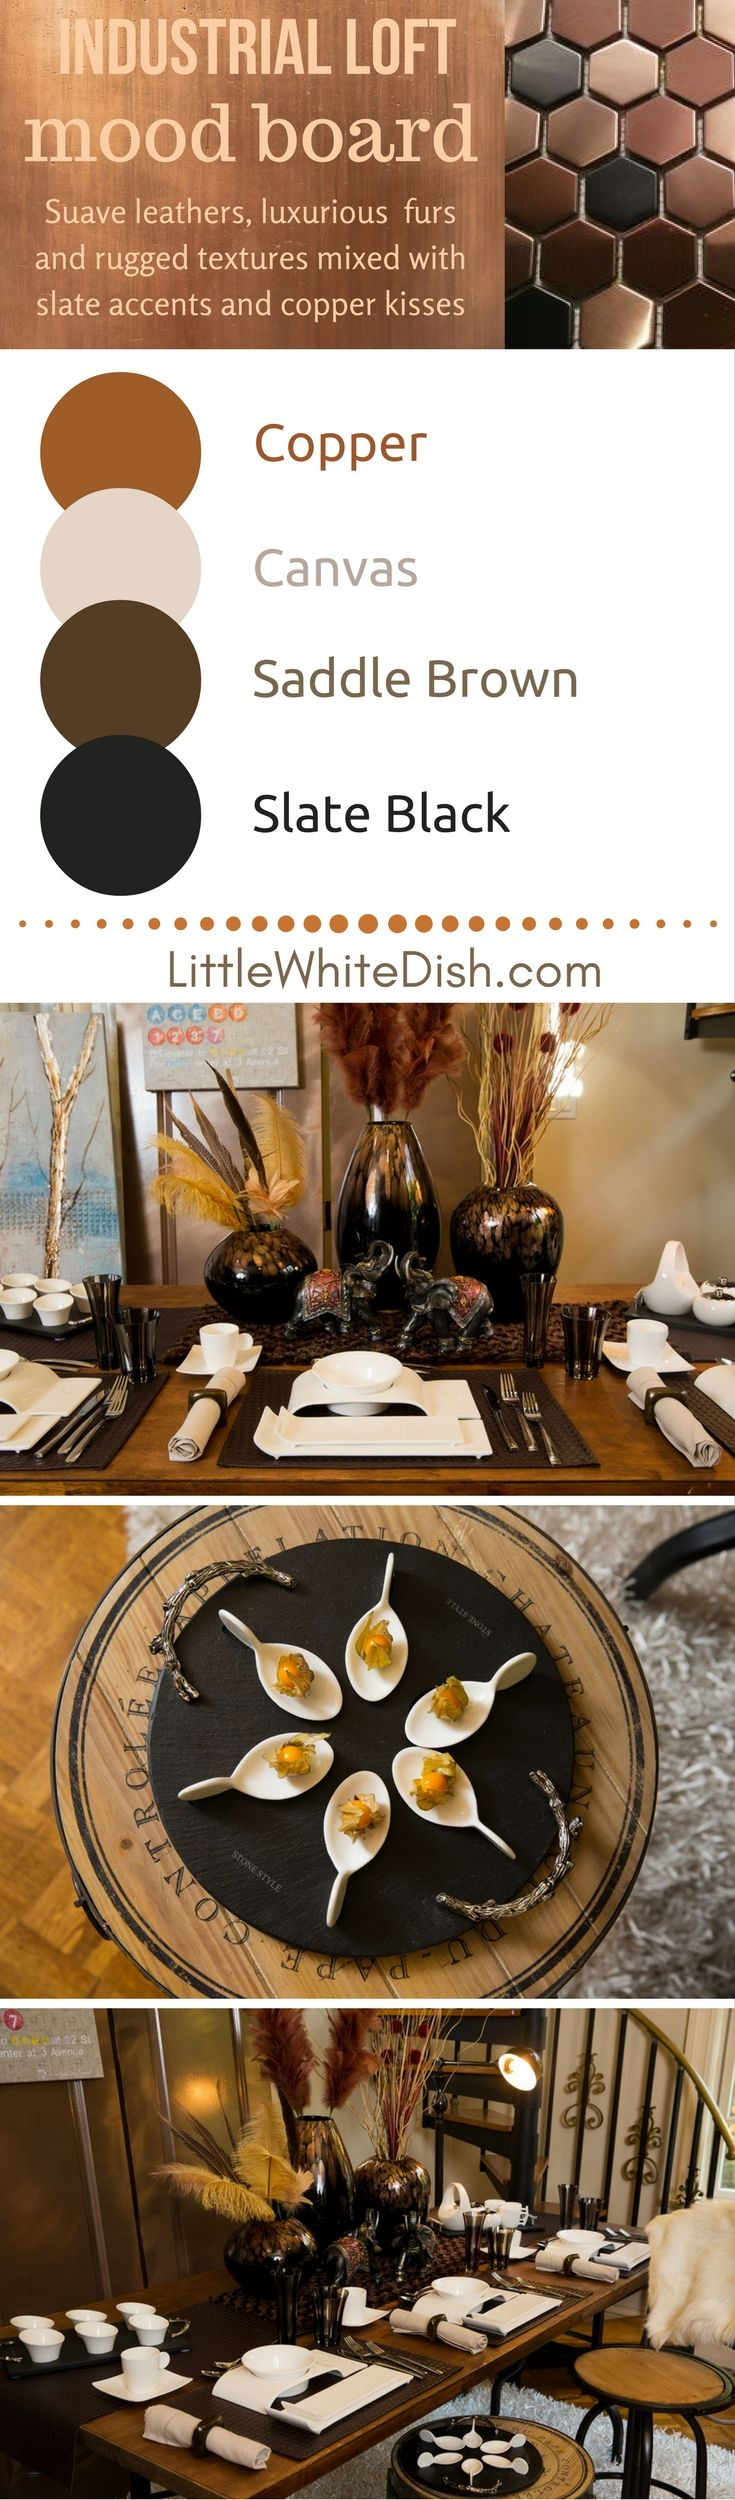 Get that industrial loft look, for your sophisticated table setting. Earthy colors, contrasting with black, and splashes of copper accents. white dinnerware, mood board, black vases, feathers, elephant sculptures, glasses natural napkins